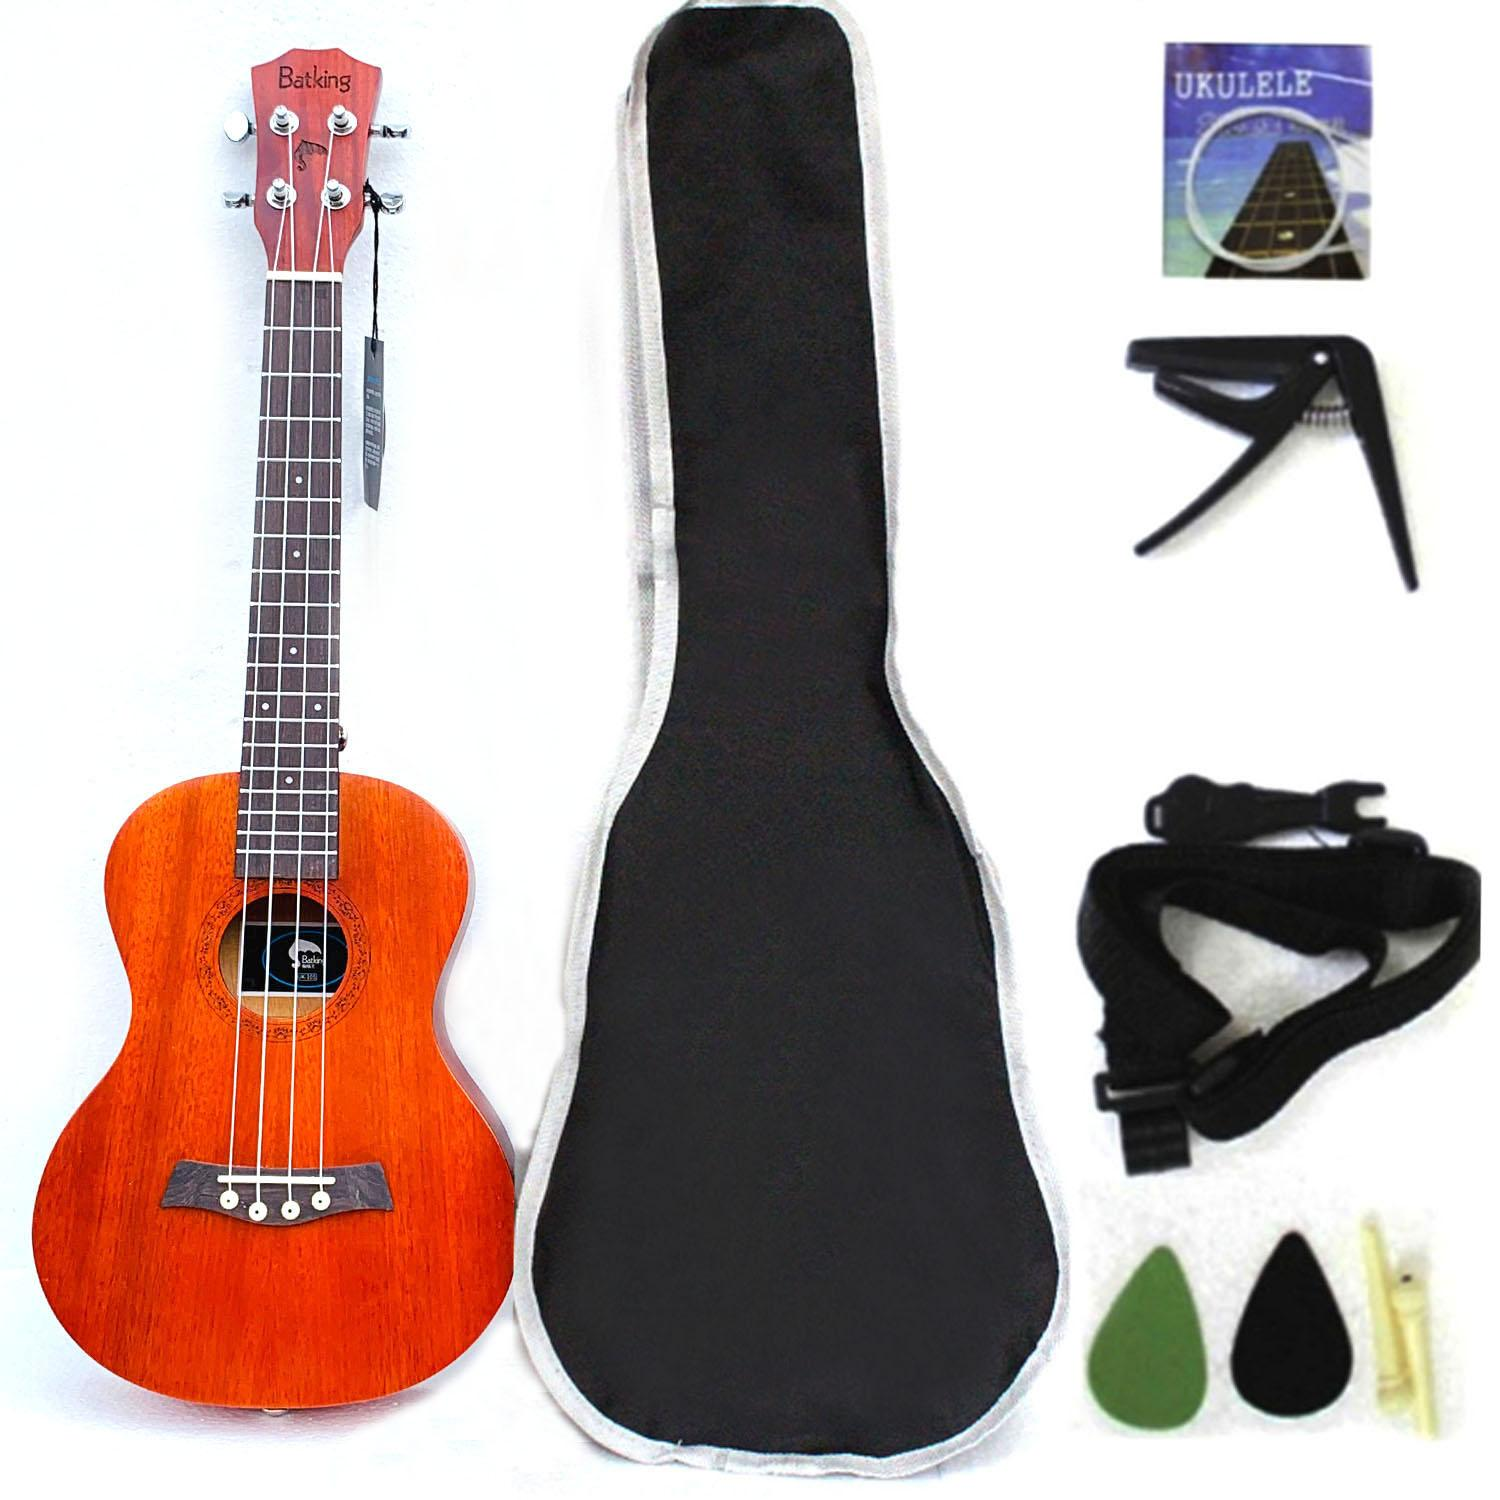 Concert Ukelele Solid Top Mahogany 23 Inch With Ukulele Accessories With Gig Bag